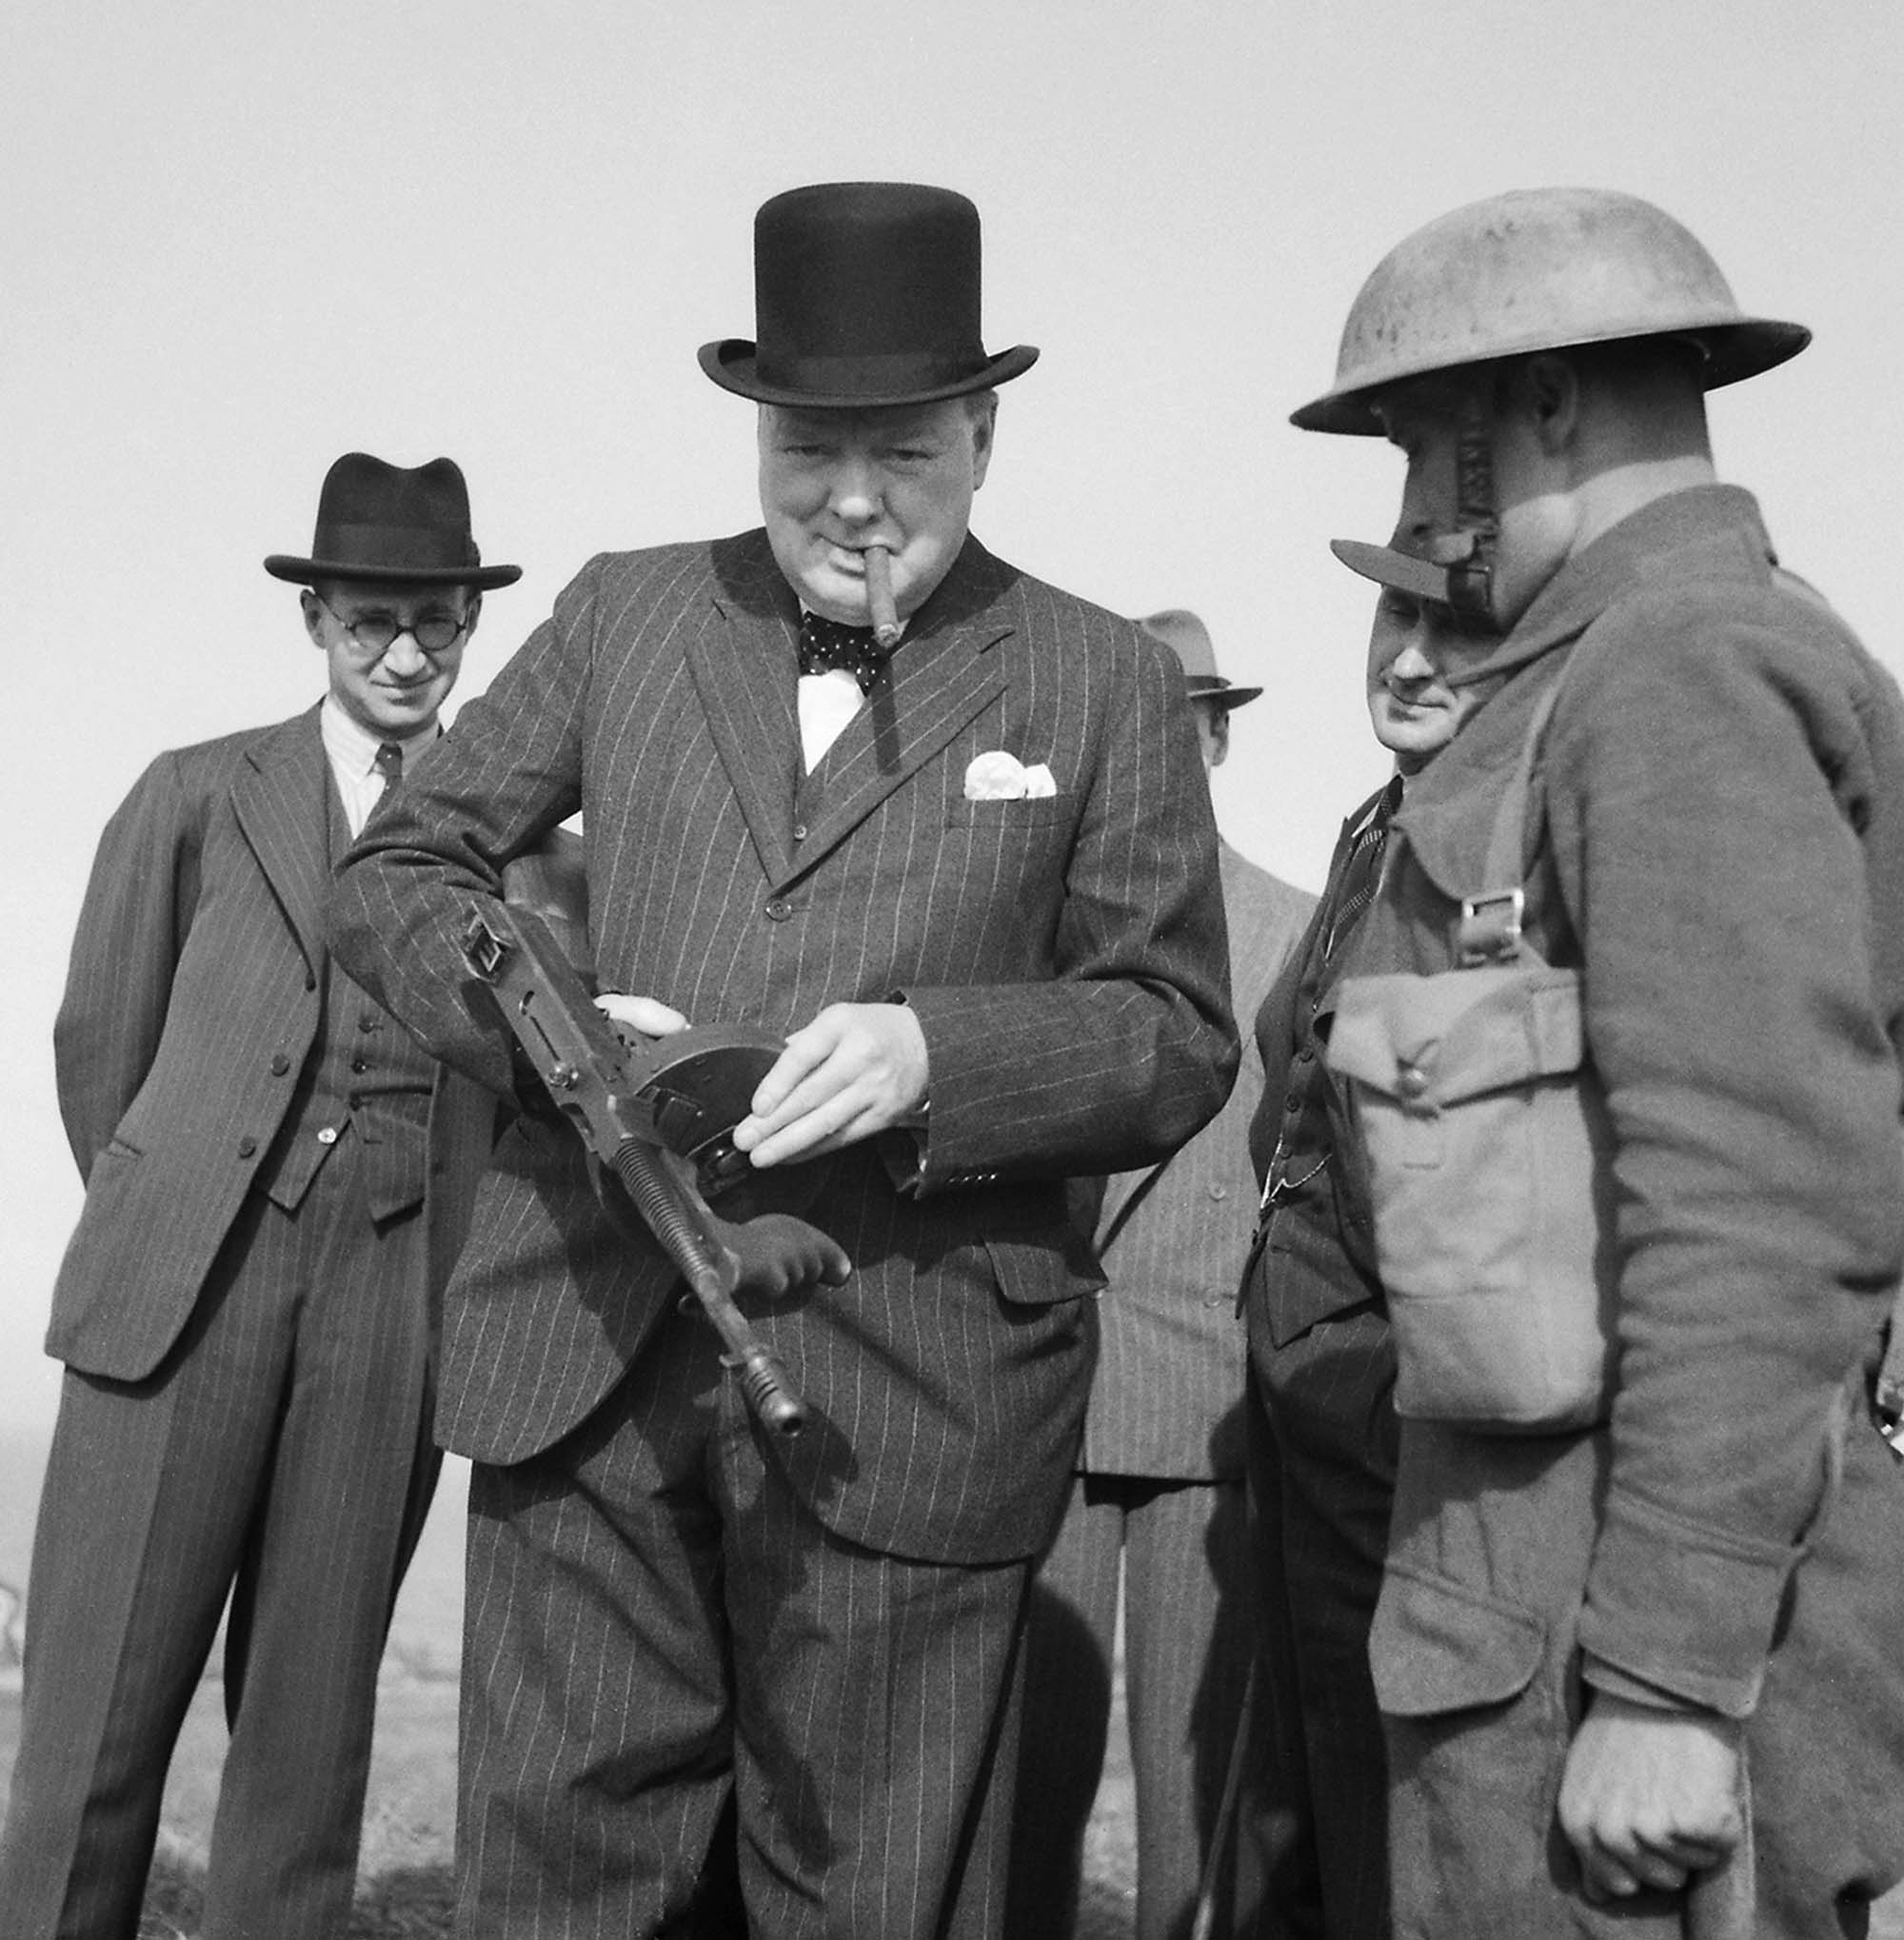 Winston Churchill with a Tommy Gun during an inspection near Hartlepool, 1940.